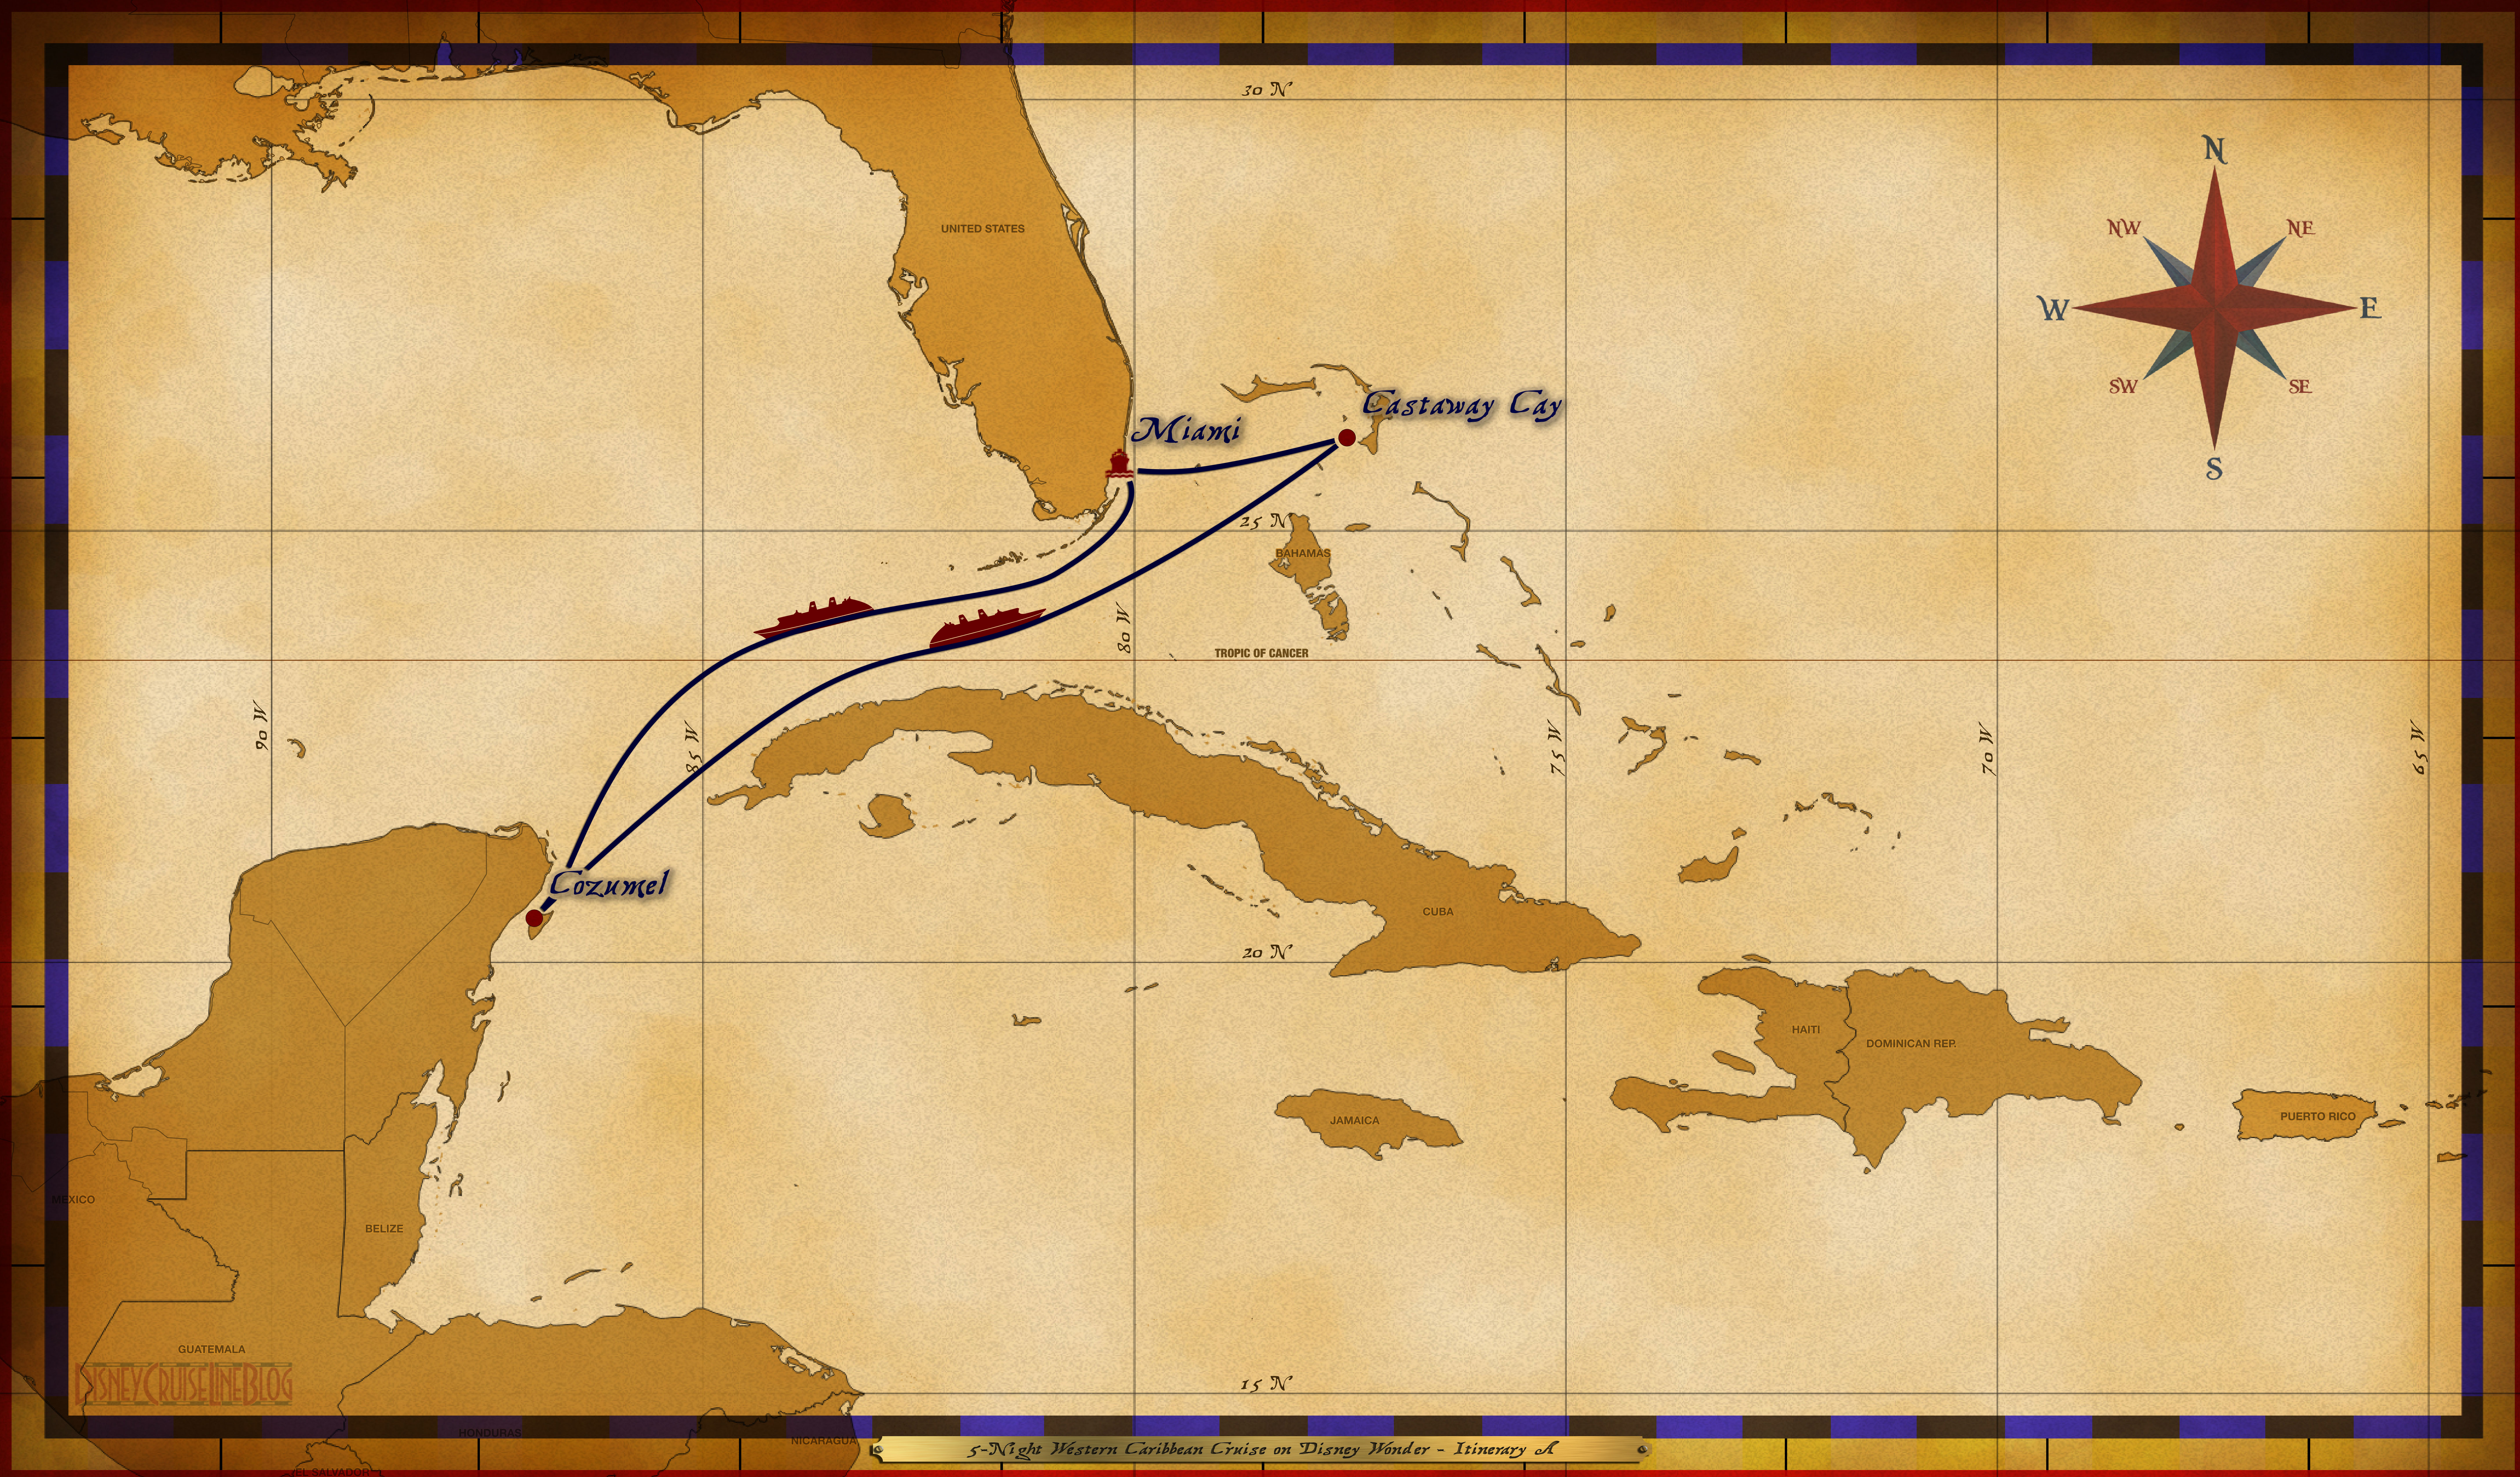 Personal Navigators 5 Night Western Caribbean Cruise On